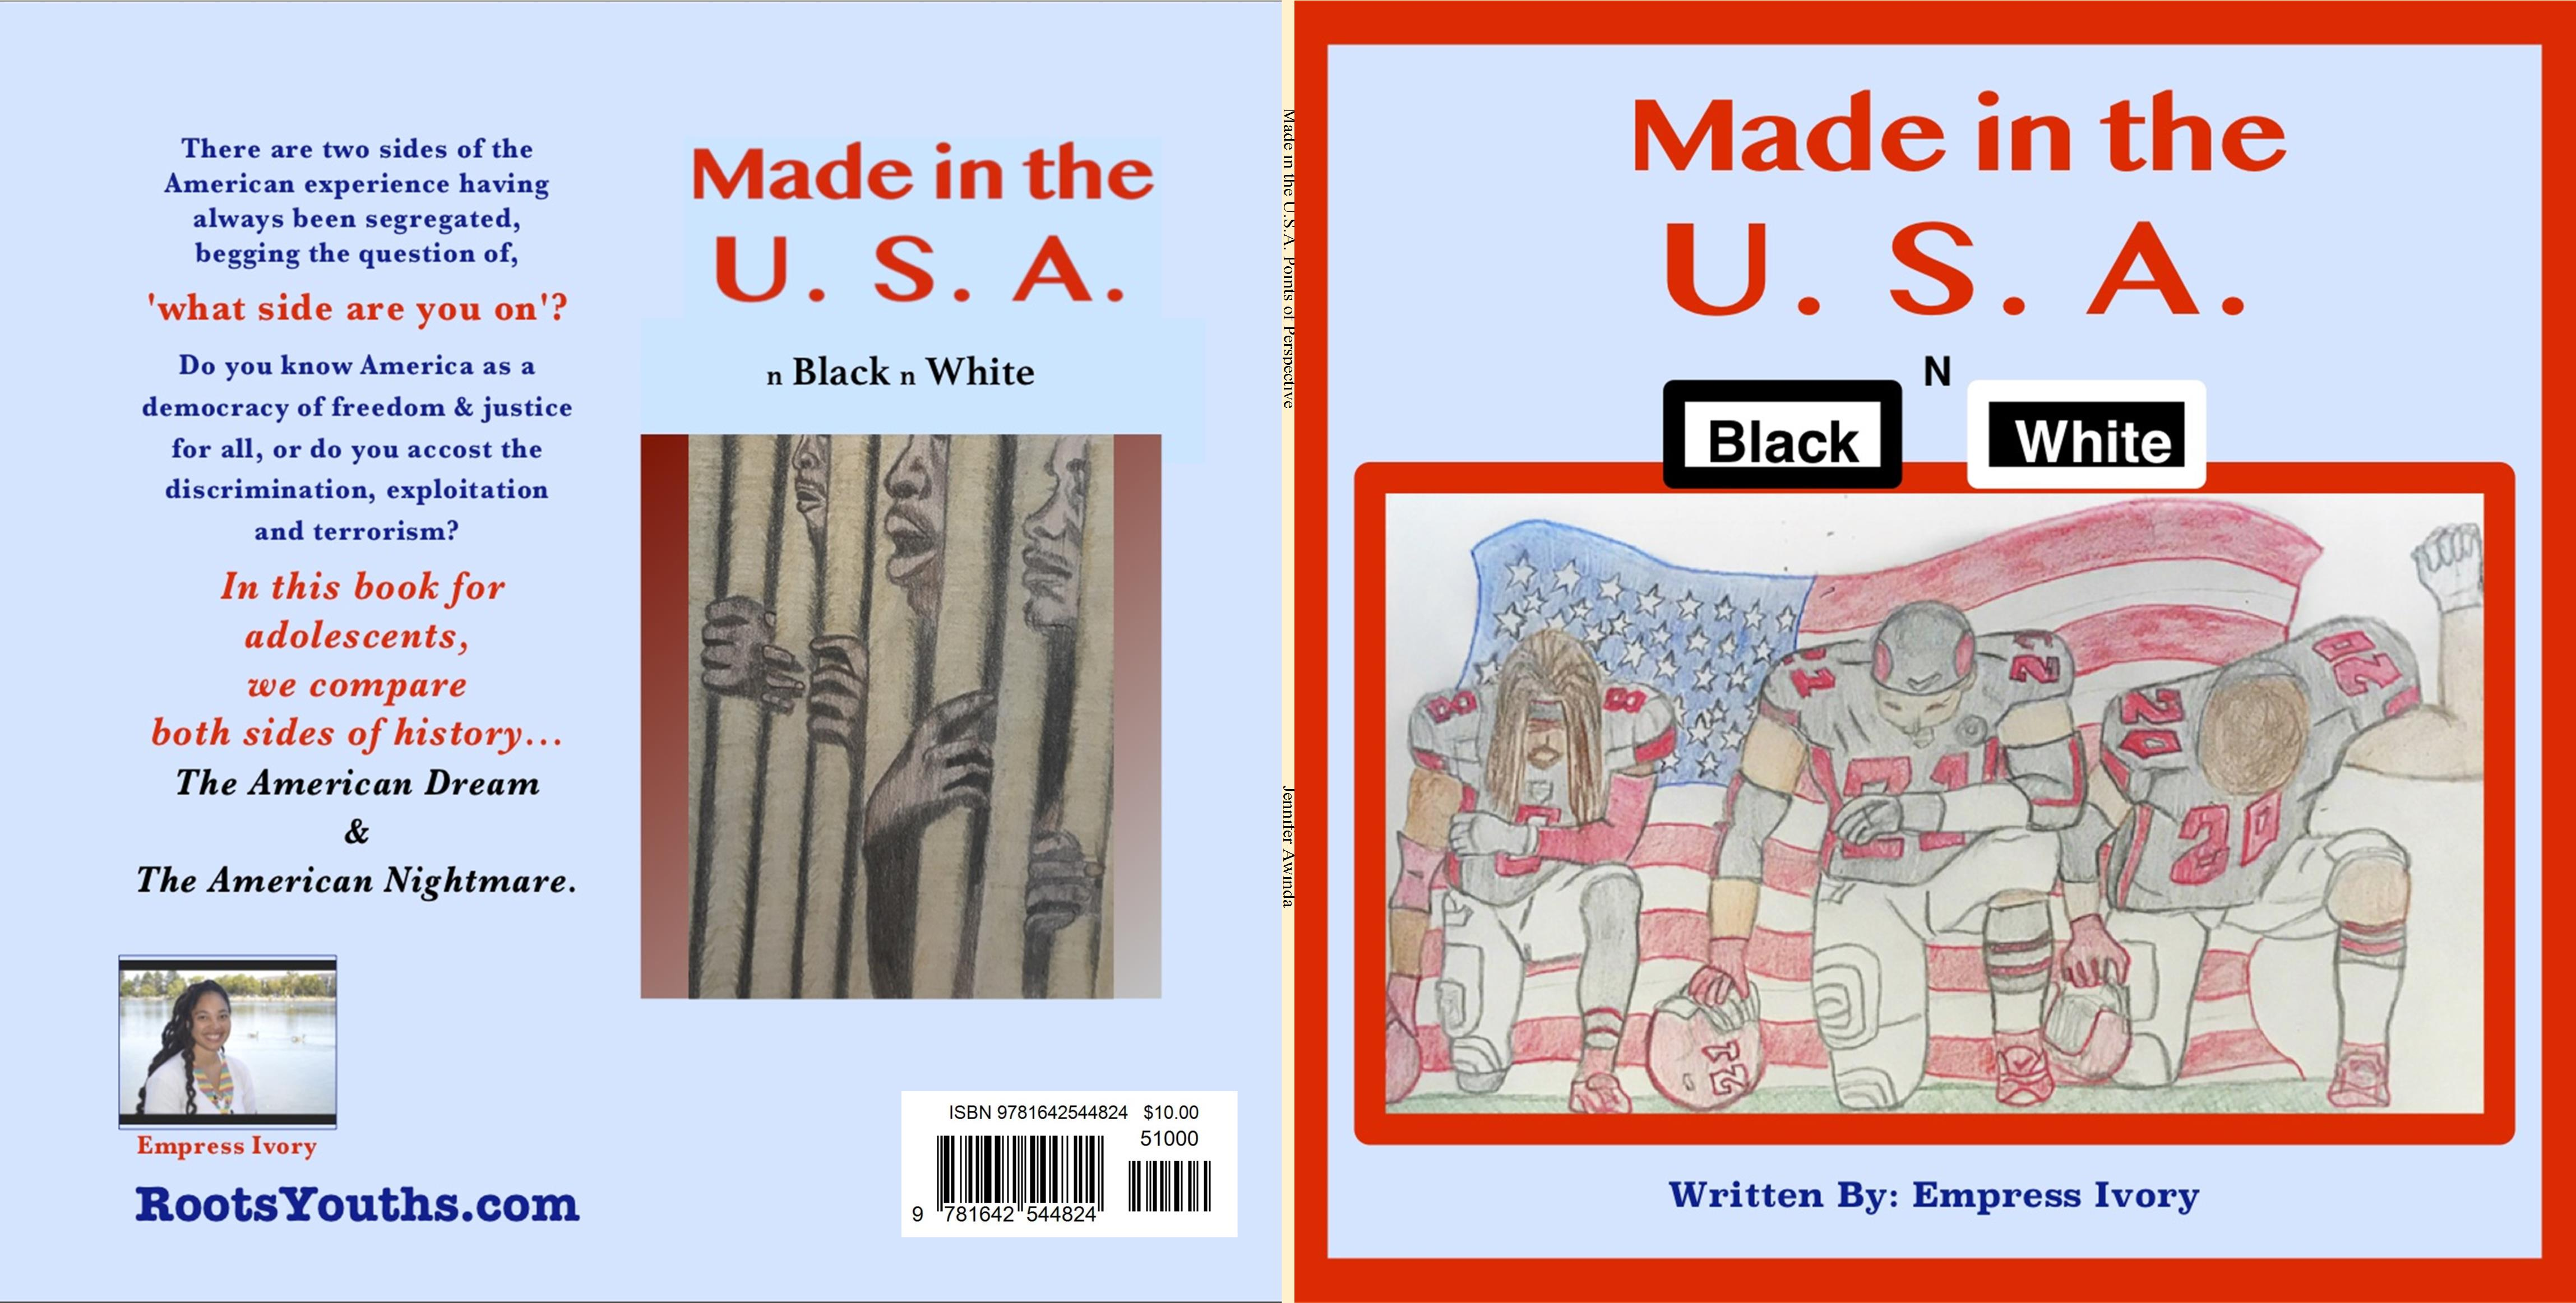 Made in the U.S.A., n Black n White cover image